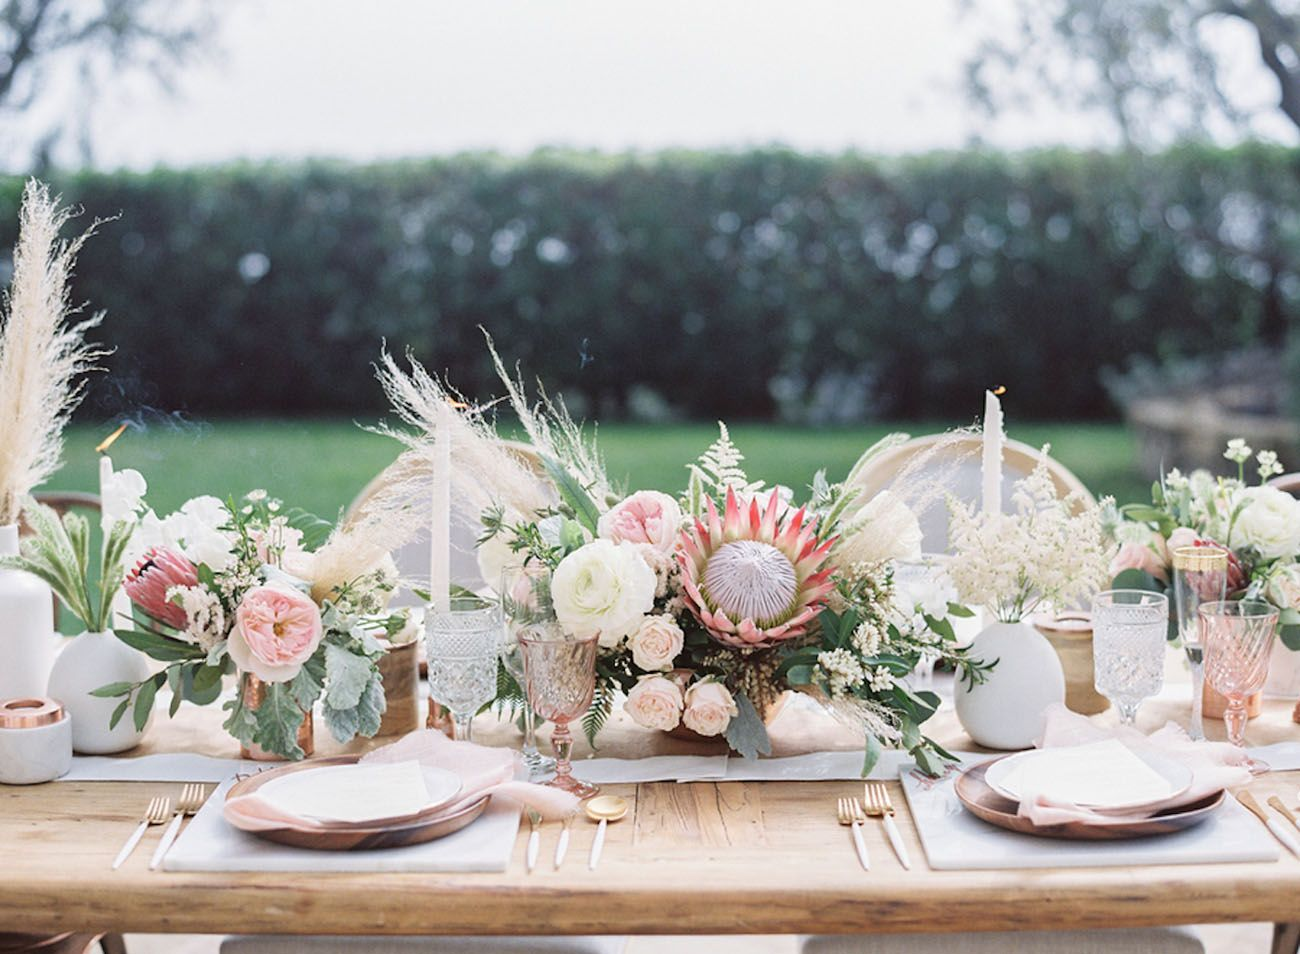 wedding decoration ideas south africa%0A protea centerpiece with blush pink and white accents